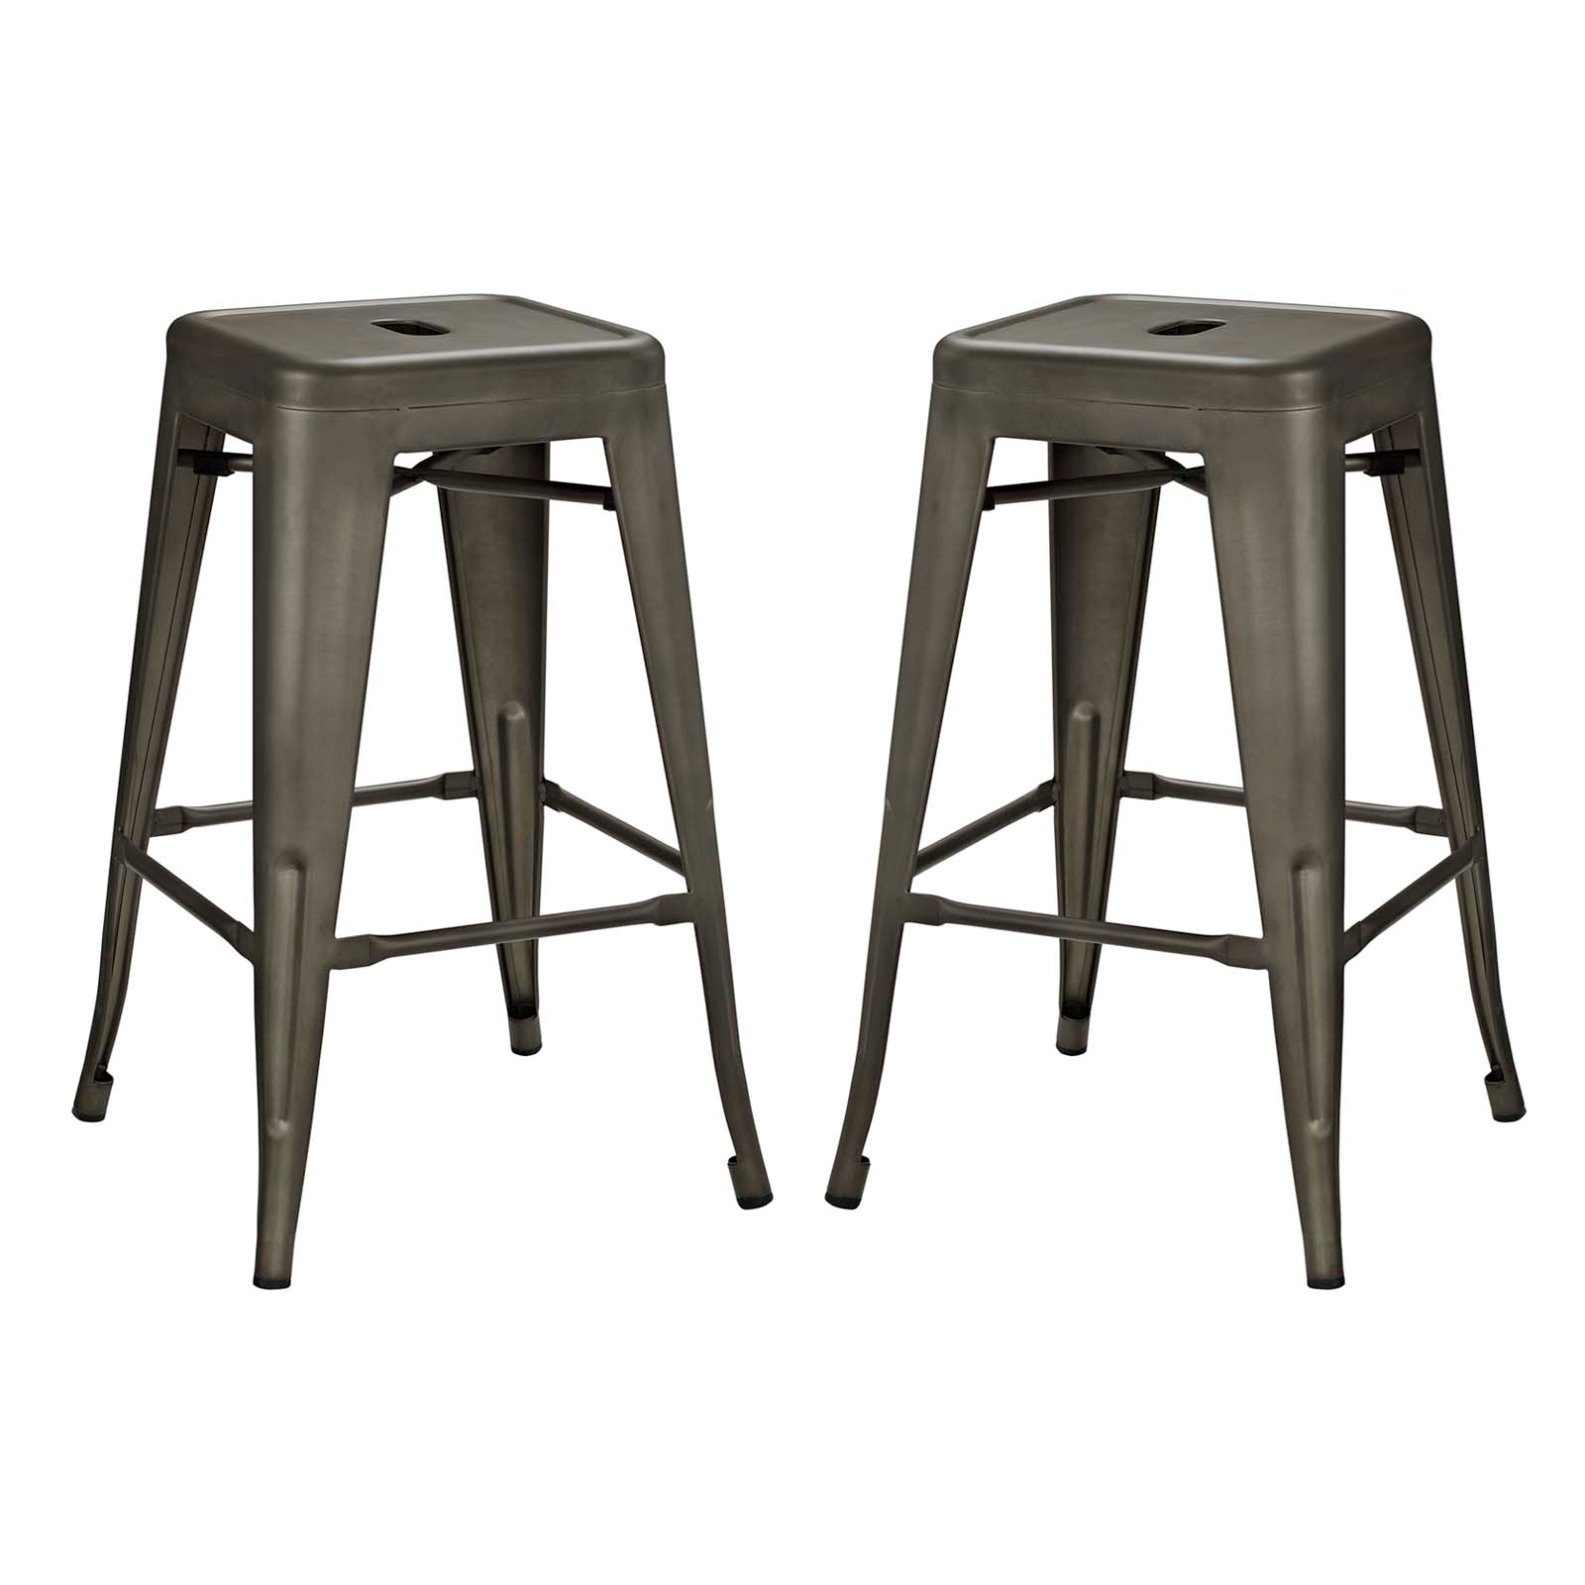 Modern Urban Industrial Distressed Antique Vintage Counter Stool Chair ( Set of 2), Brown, Metal